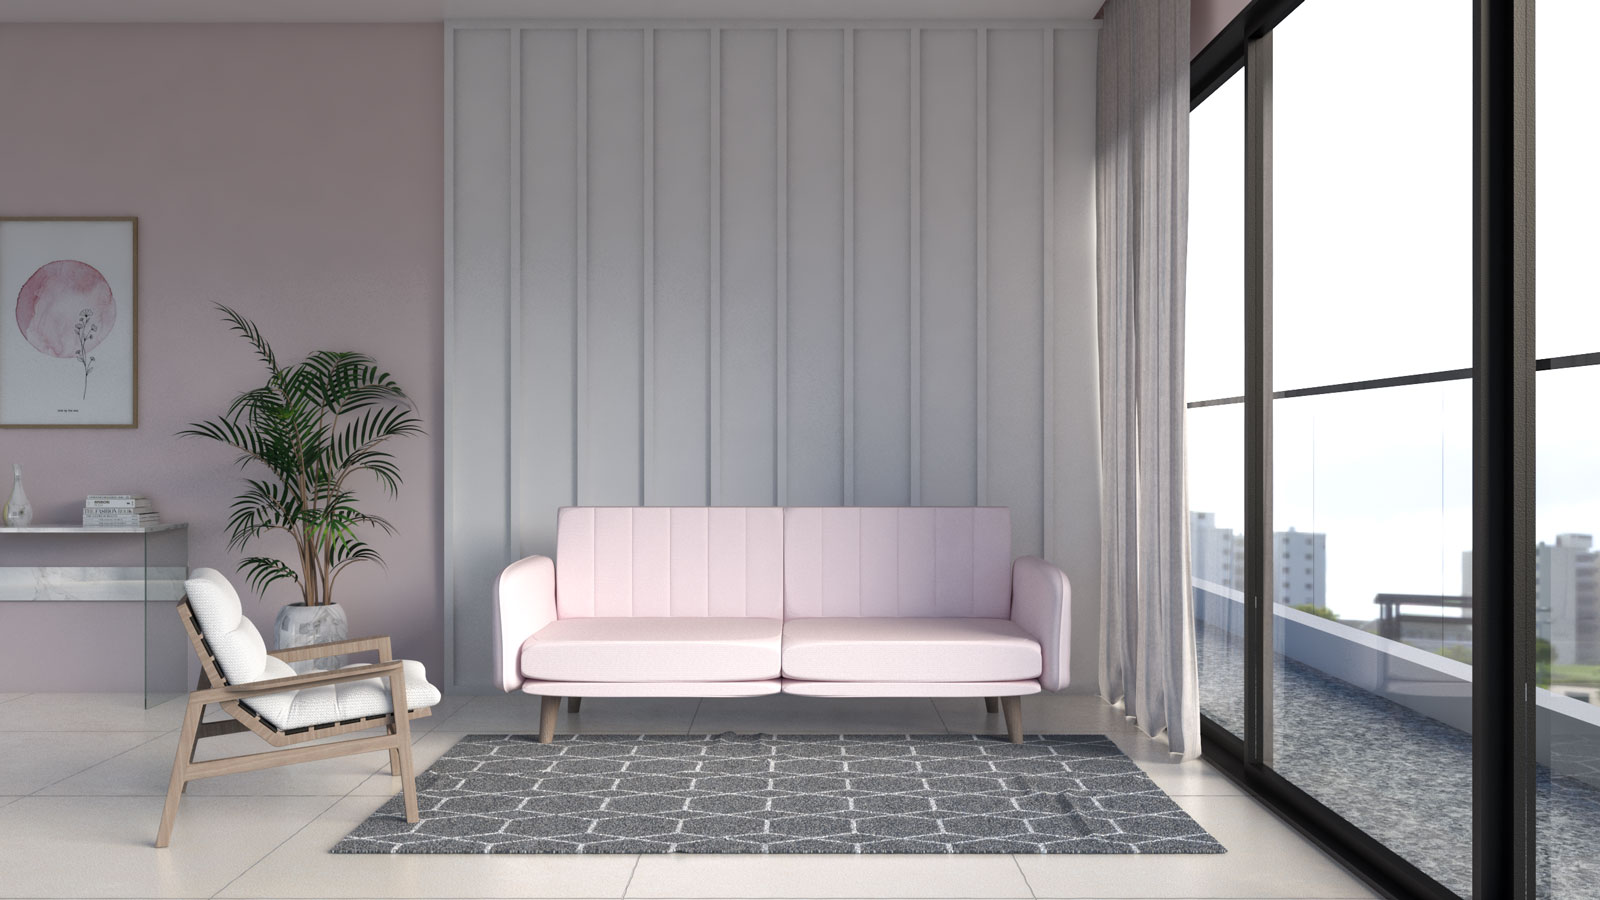 Gray and white geometric pattern rug with pink couch